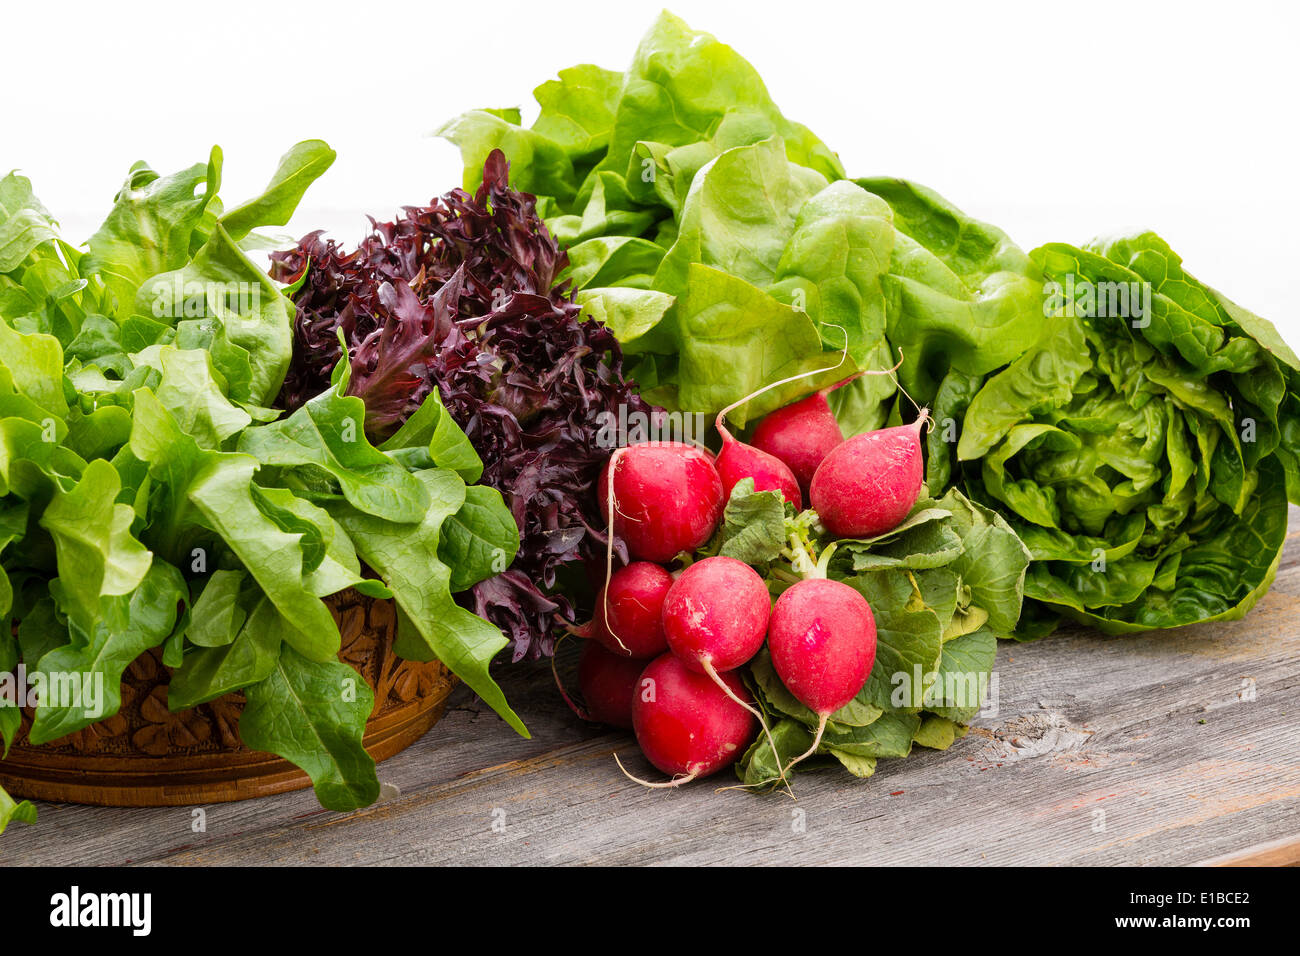 Healthy fresh salad ingredients displayed on old weathered wooden boards with several varieties of leafy green lettuce and a bun - Stock Image